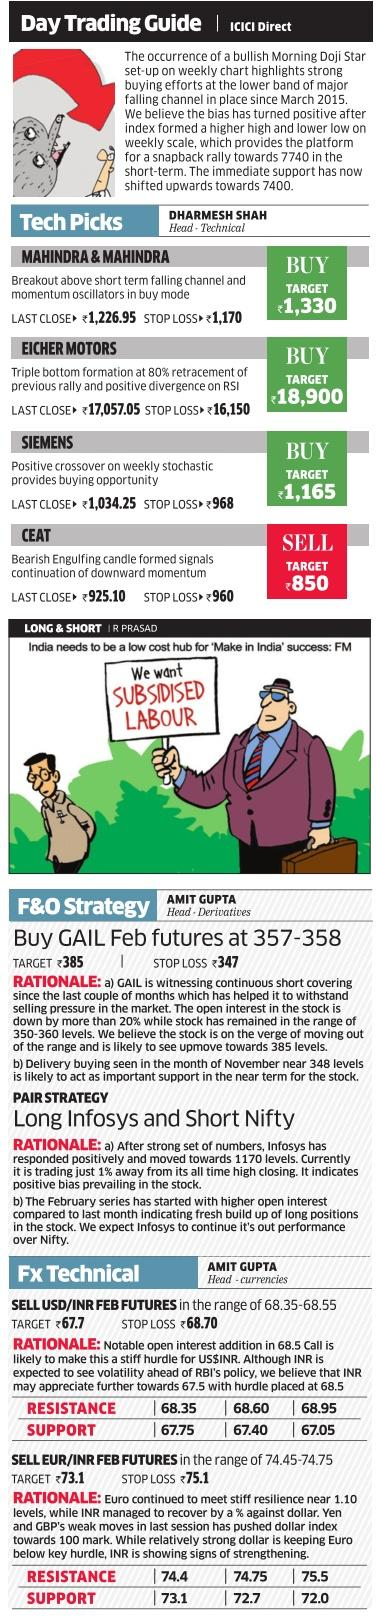 Day trading guide by ICICIDirect com - The Economic Times